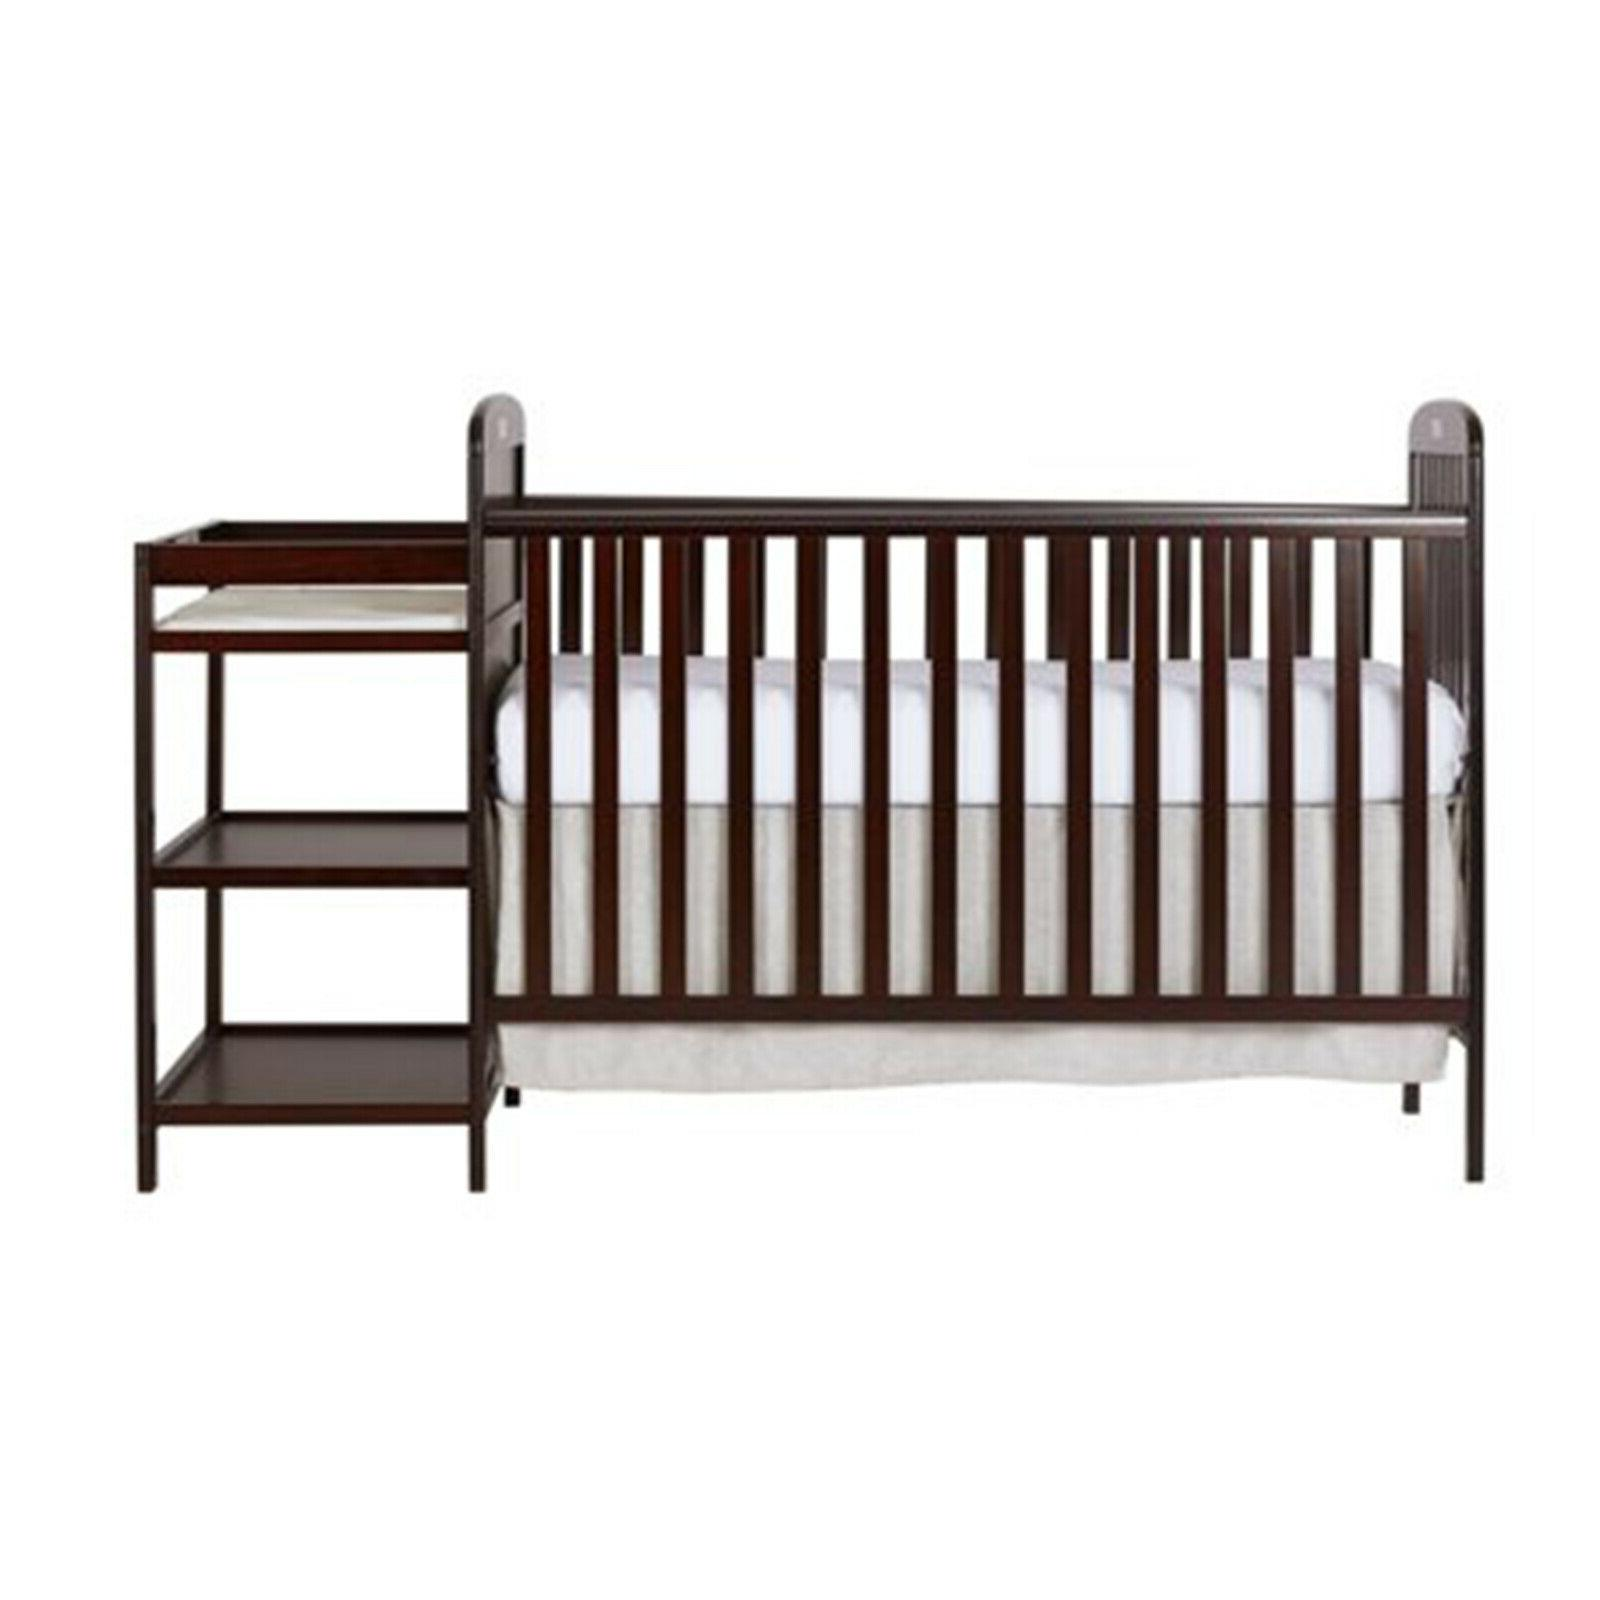 Baby Mattress 4-in-1 Full Table